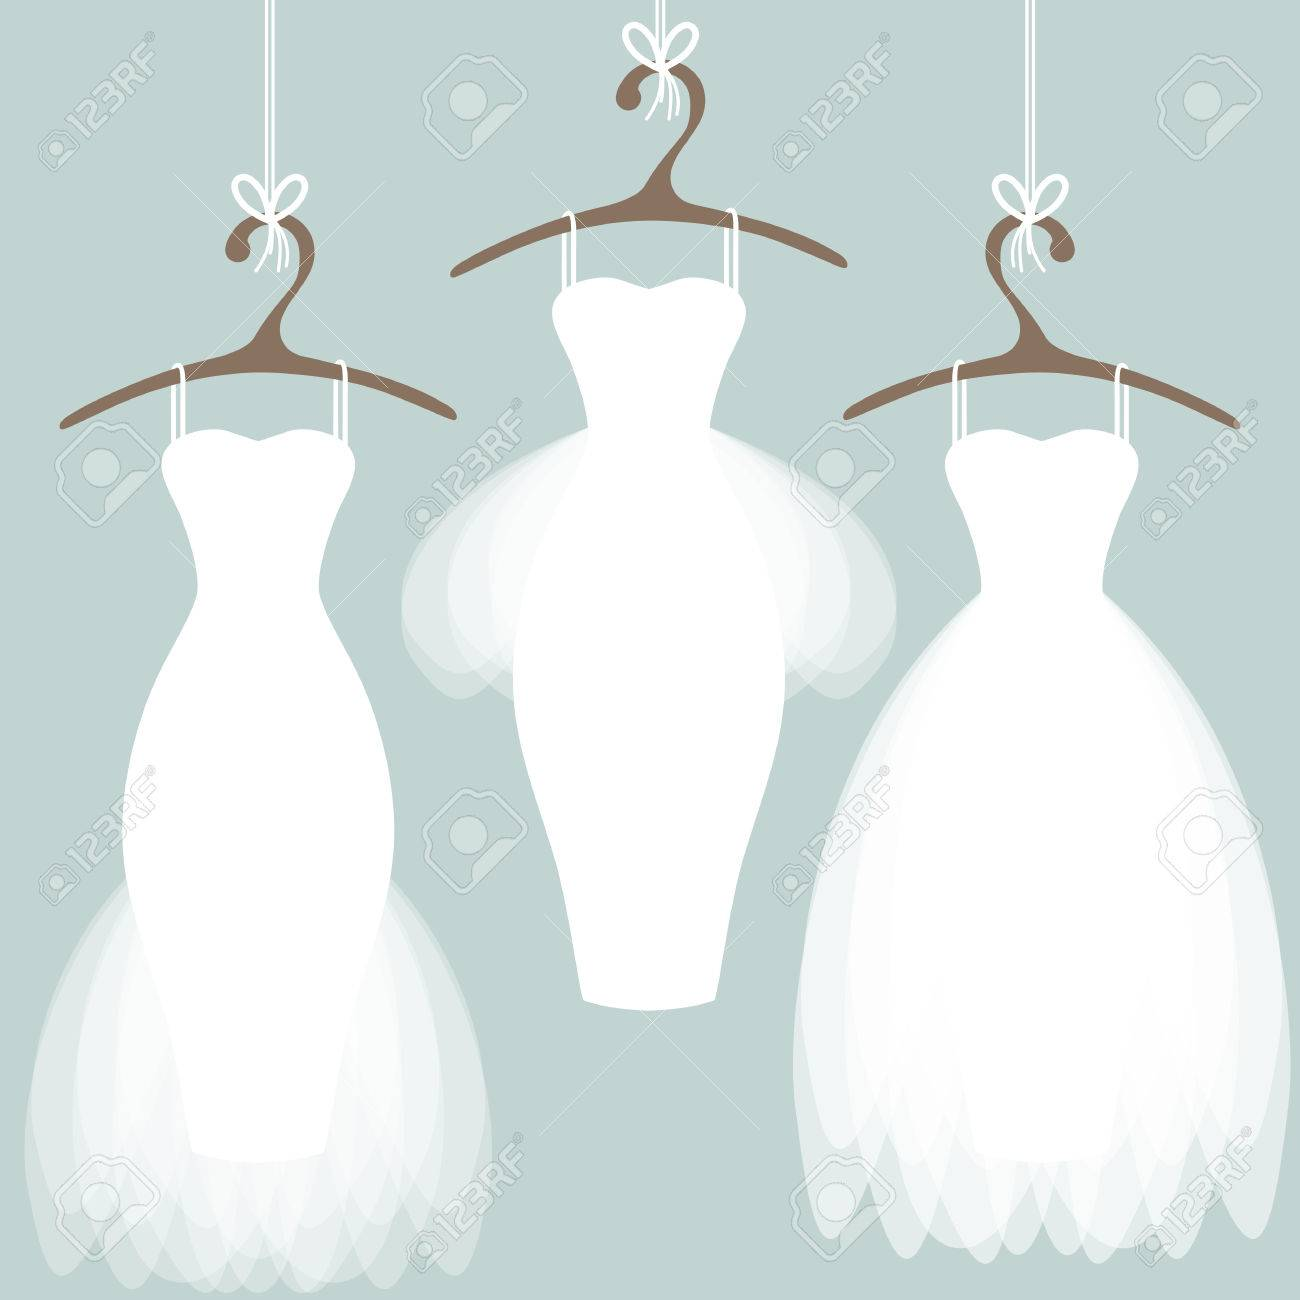 Wedding Dresses On Hangers. Pastel Background Royalty Free Cliparts ...